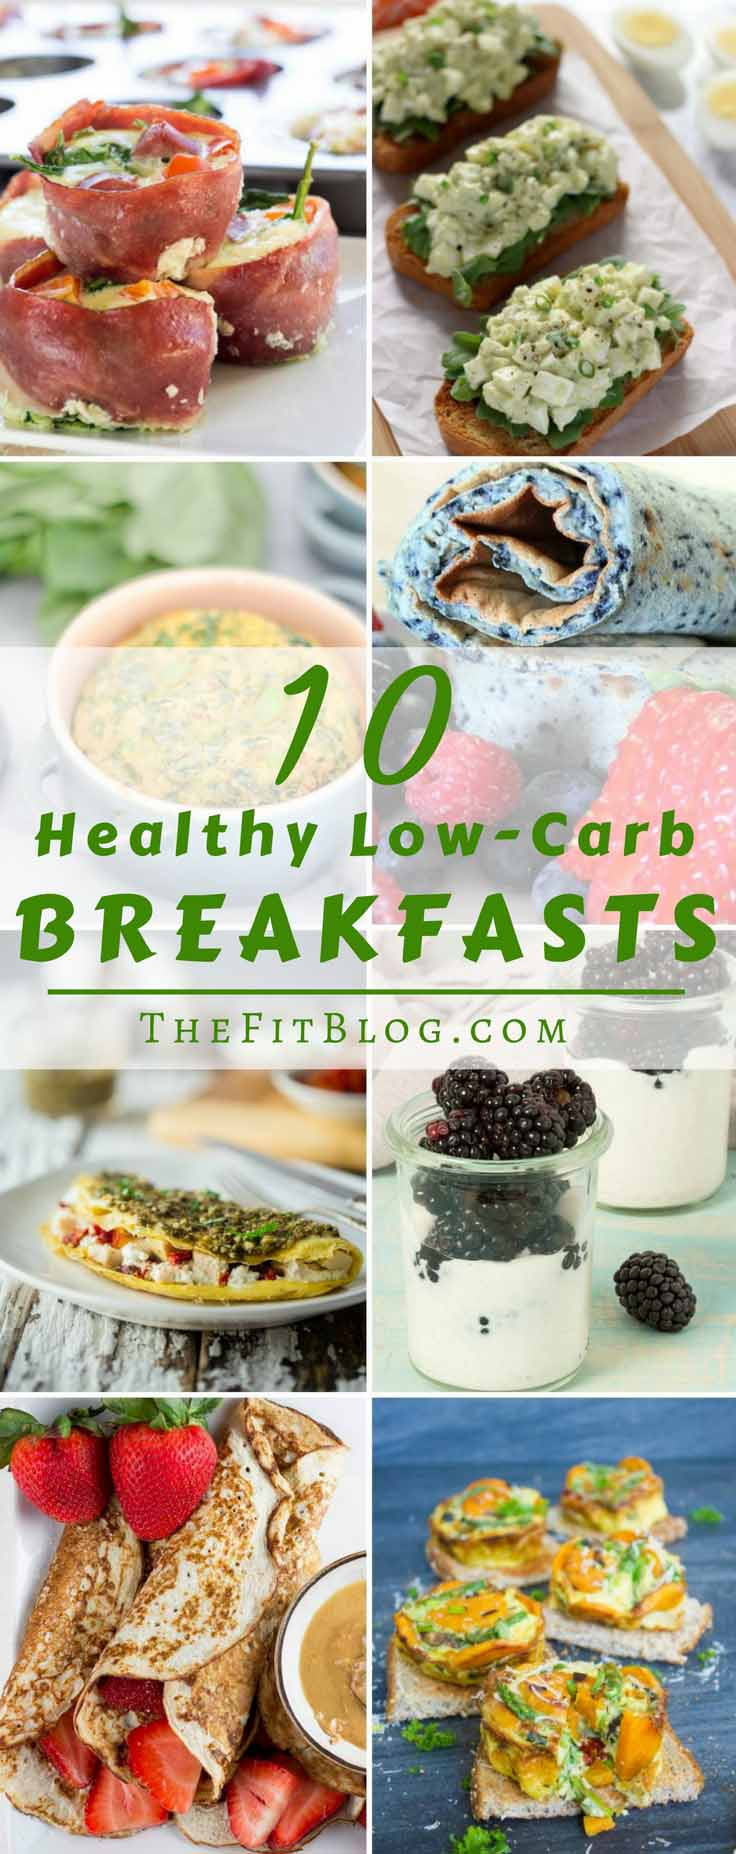 10 Healthy Low-Carb Breakfast Recipes – Our favorite delicious and diabetic friendly breakfast. Pancakes, omelettes, toast, eggs and bacon. It's all here!